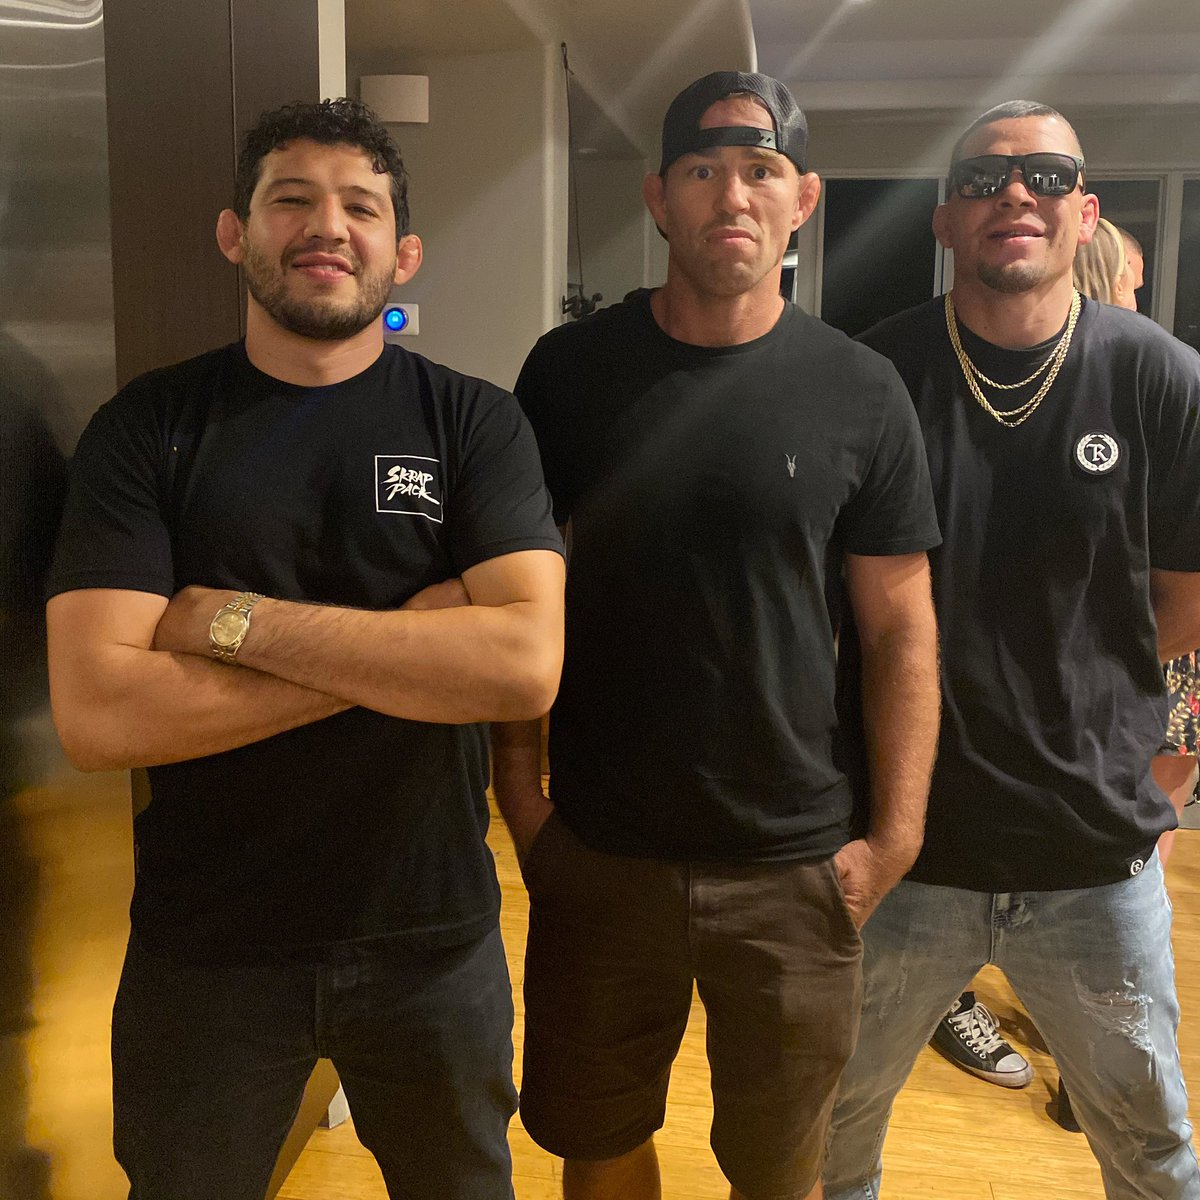 Win lose or draw brothers for life @NateDiaz209 @GilbertMelendez https://t.co/IKB5ybGEEc